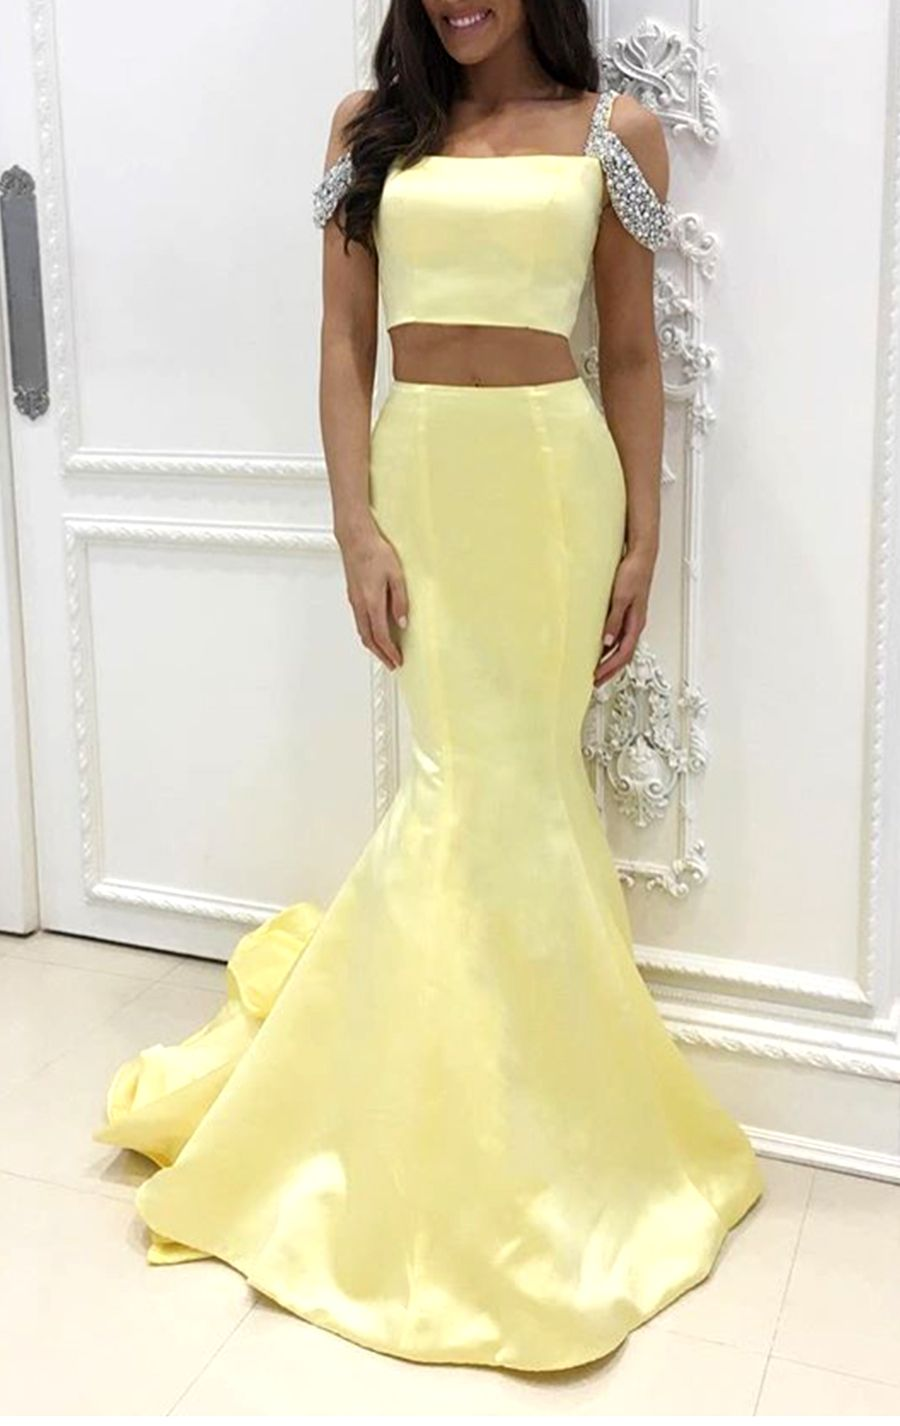 92ca4ef9cad Gorgeous Mermaid Off the Shoulder 2 Piece Prom Dress Canary Formal Evening Gown  Mermaid Prom Gown  dress  gown  prom  prom2018  promdress  promgown ...